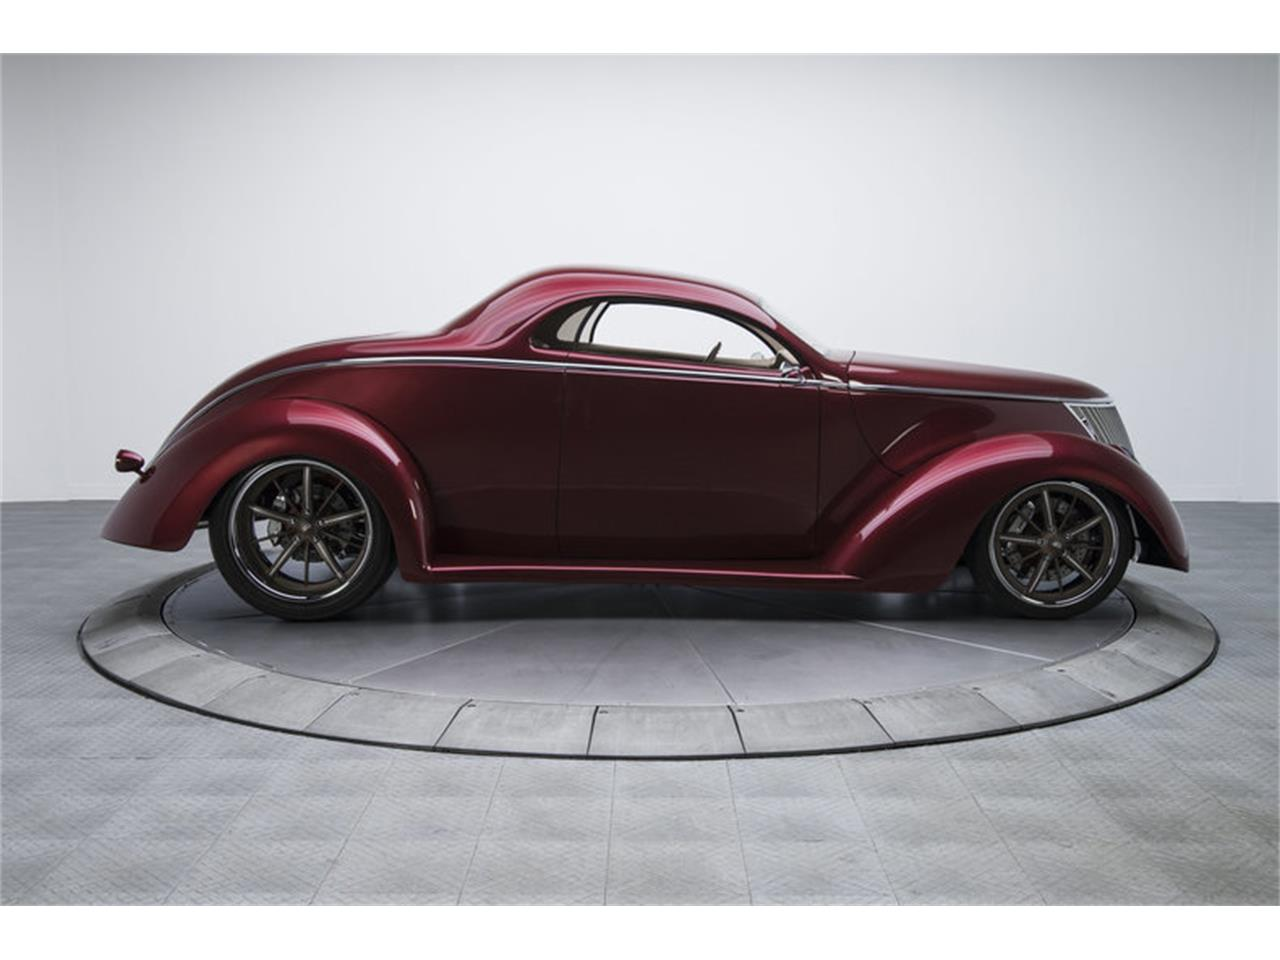 Large Picture of Classic 1937 Ford Coupe located in Charlotte North Carolina - $159,900.00 Offered by RK Motors Charlotte - I585